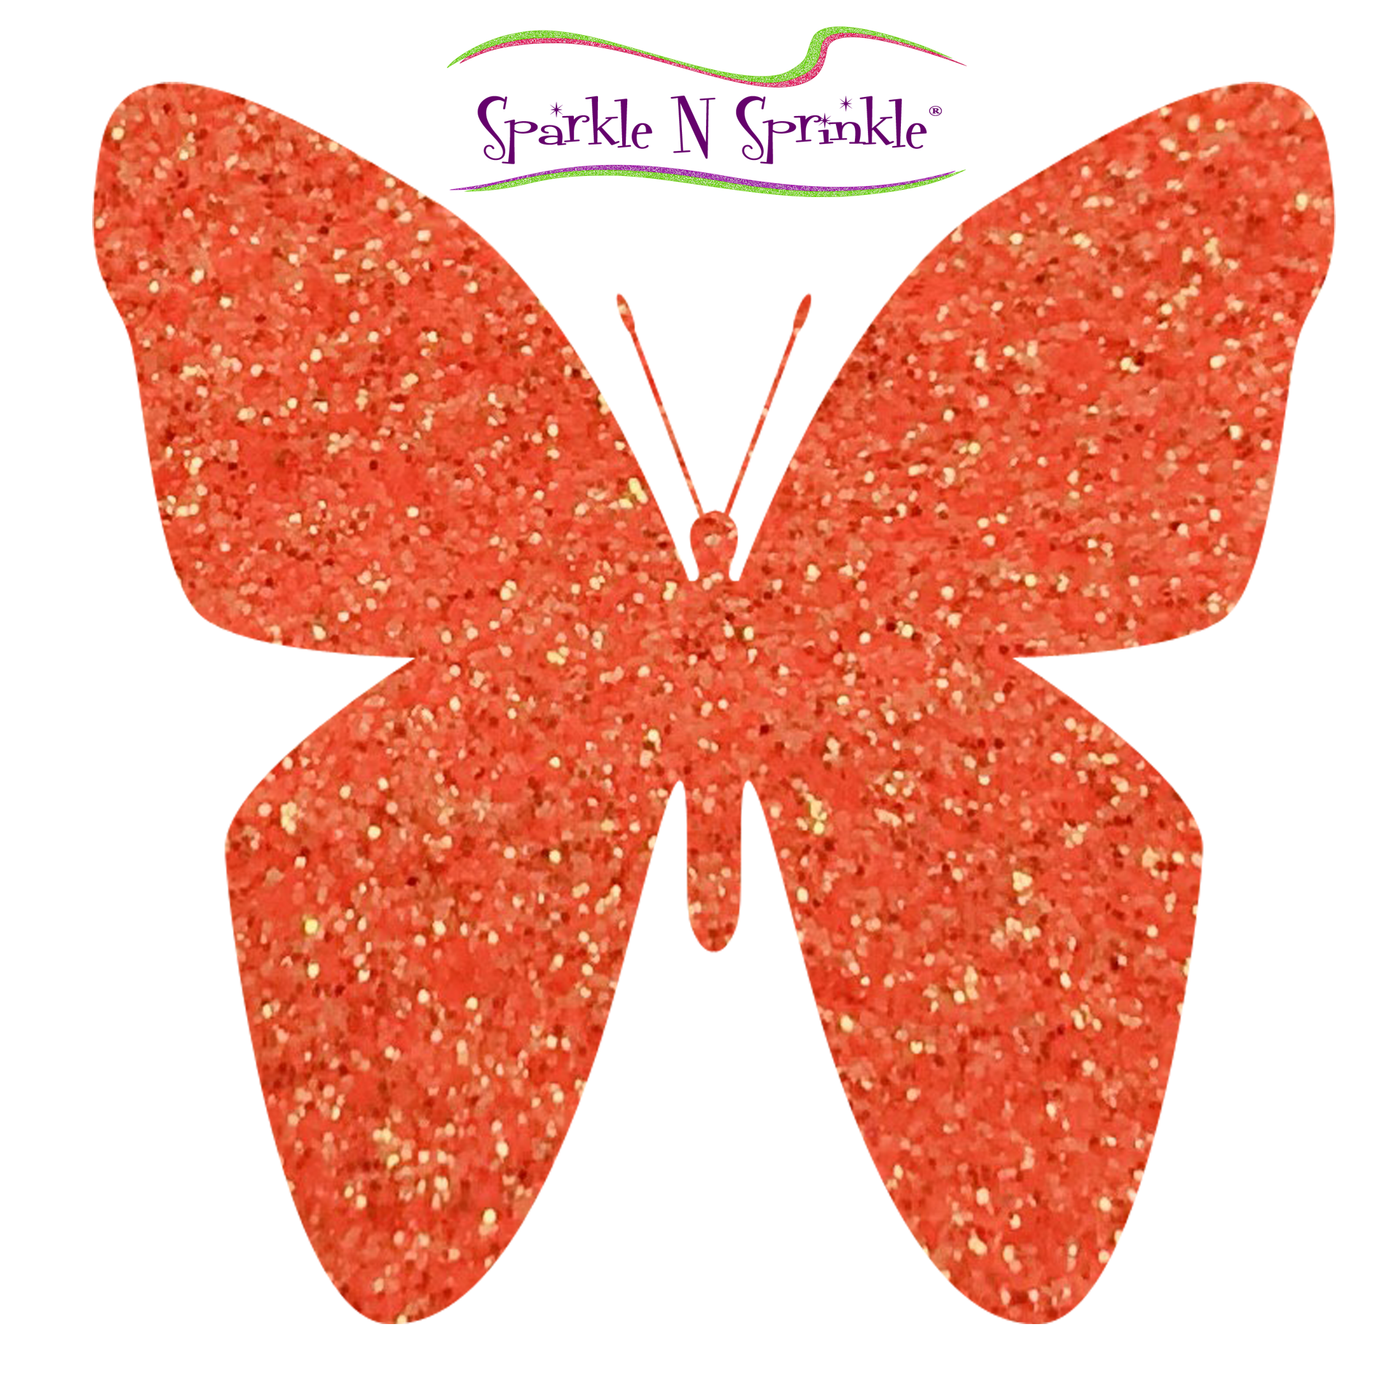 Ultrafine Glitter Orange Crush (Semi-transparent) [G1092]